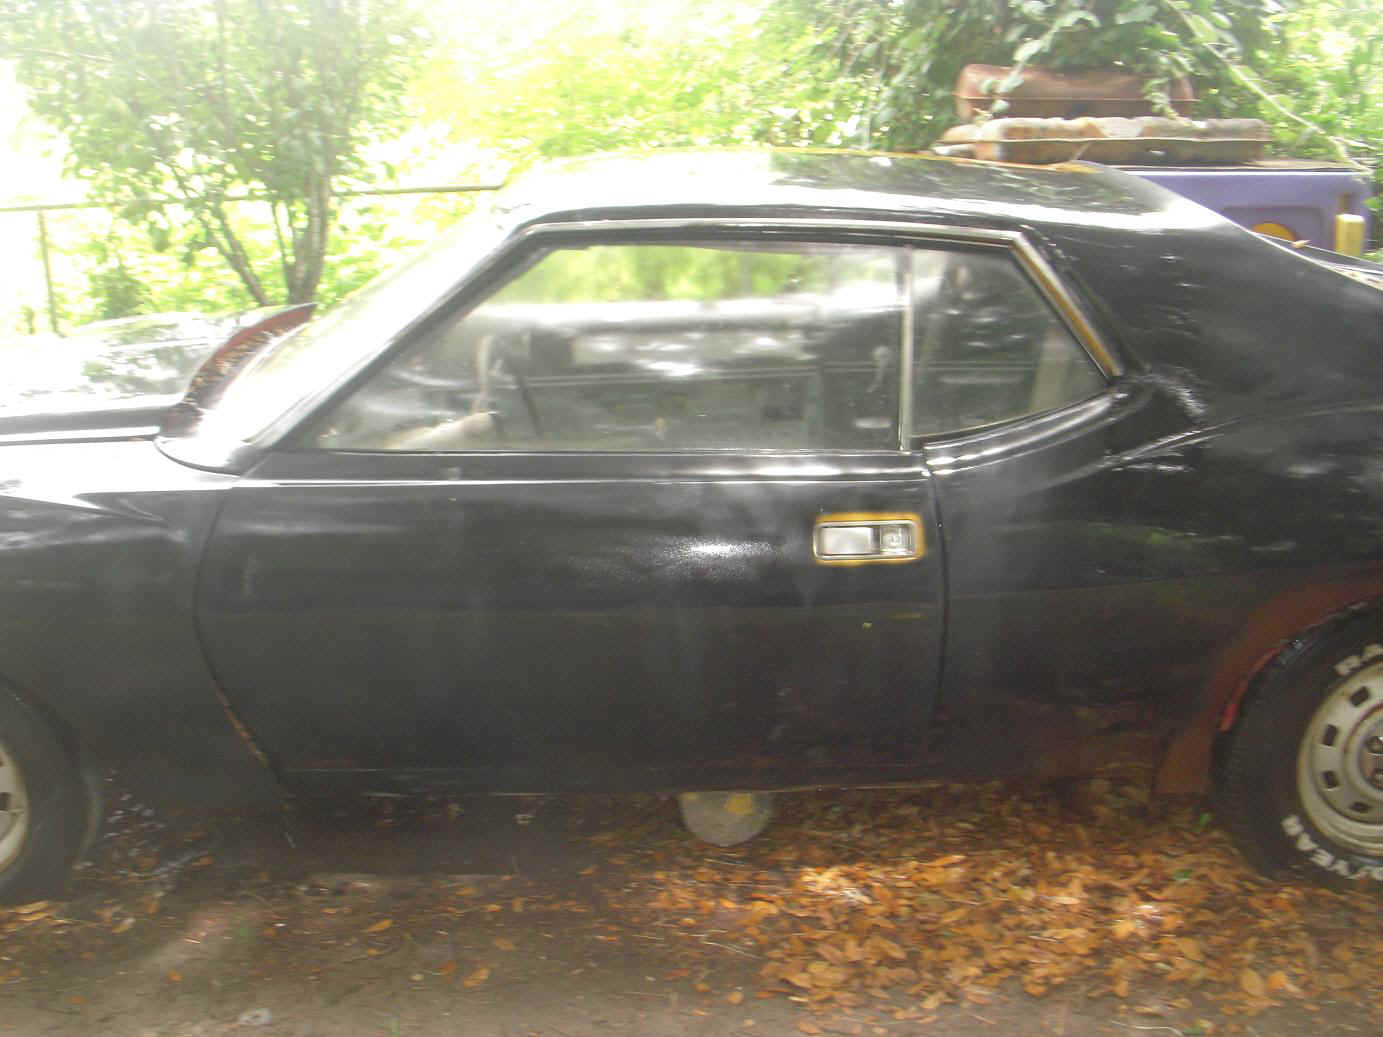 74-amc-amx-for-sale-3.jpg (162547 bytes)